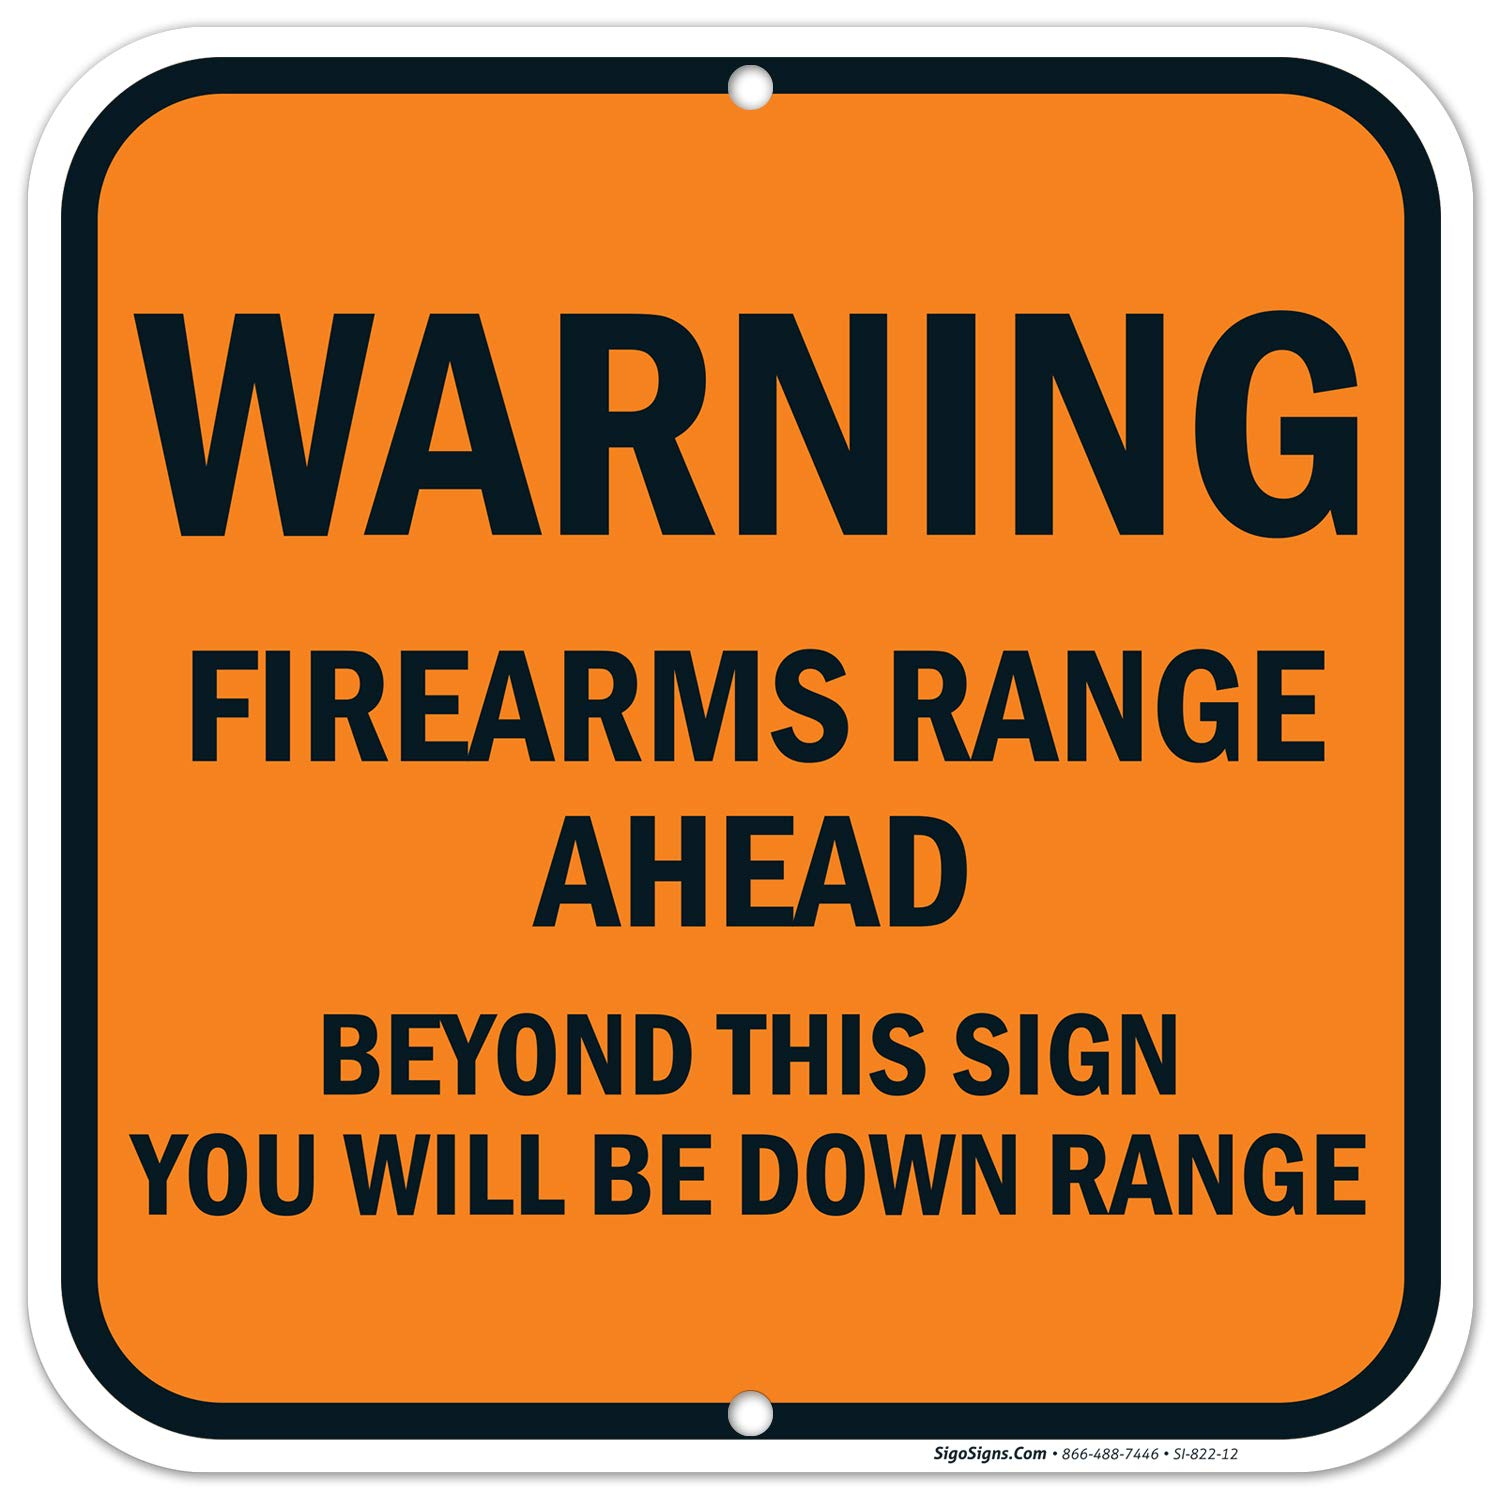 Firearms Range Ahead Beyond This Sign You Will Be Down Range Sign, 12x12 Rust Free Aluminum, Weather/Fade Resistant, Easy Mounting, Indoor/Outdoor Use, Made in USA by SIGO SIGNS